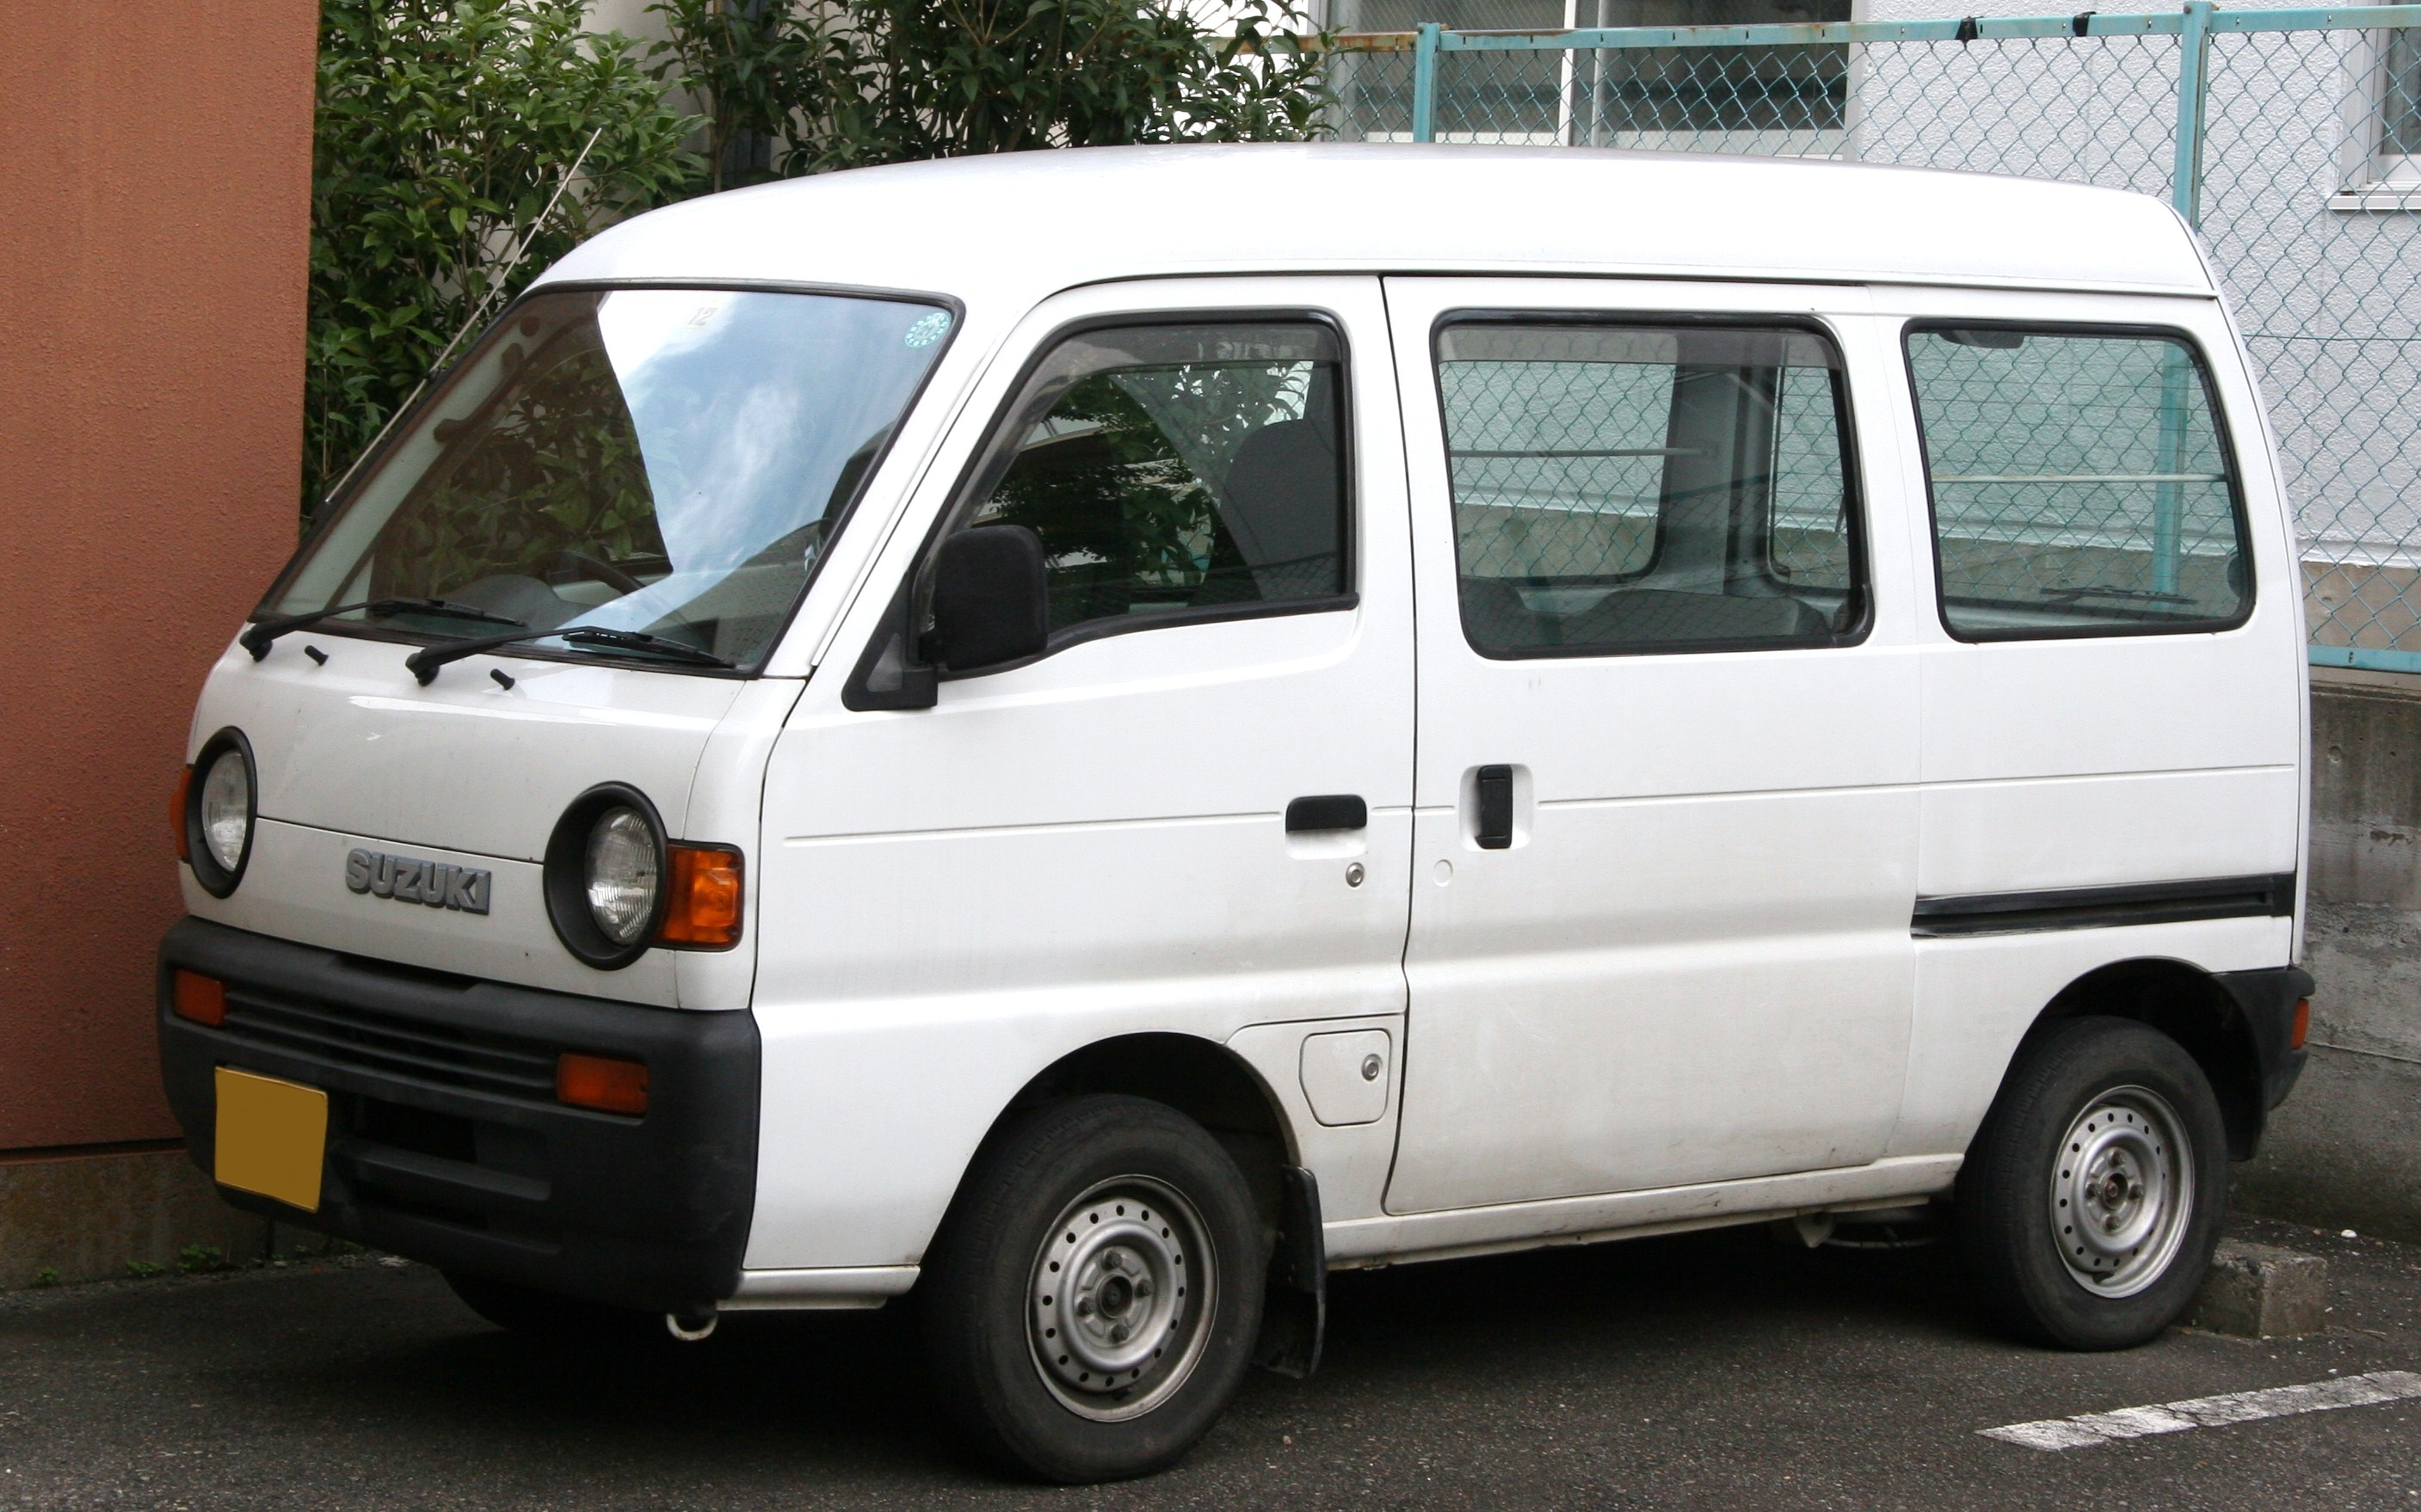 10th_generation_Suzuki_Carry_Van.jpg